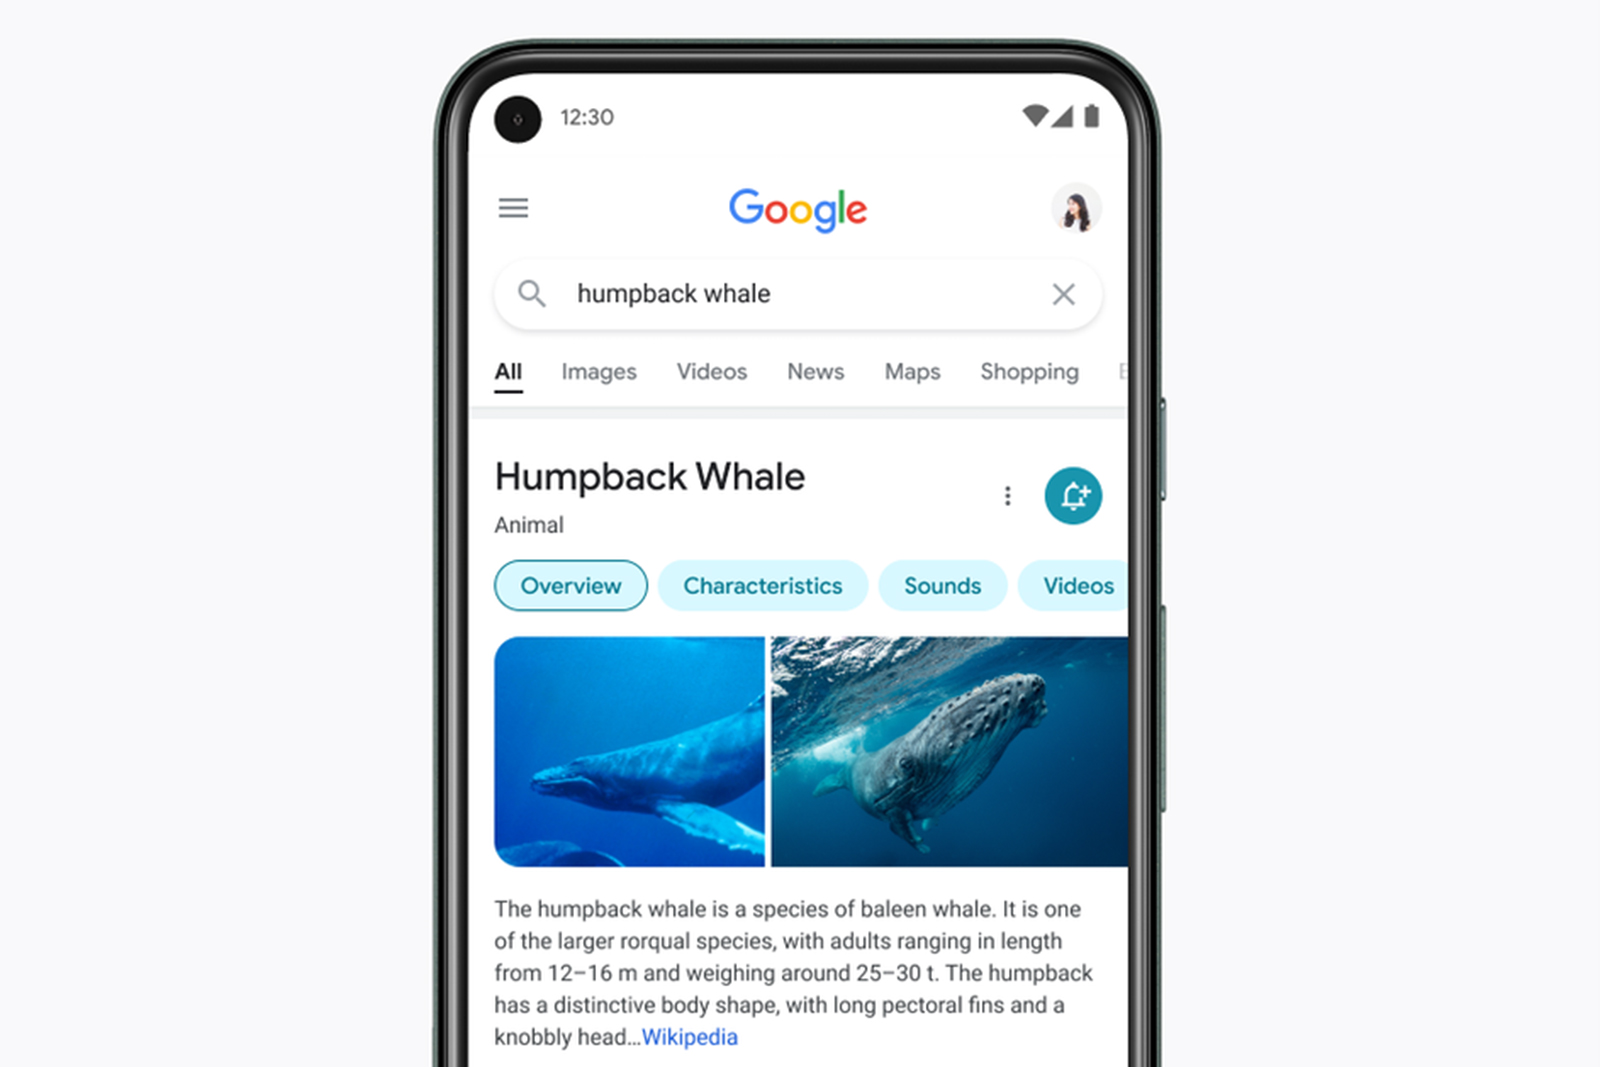 Google mobile search redesign focuses on results, not frills - Yahoo Singapore News